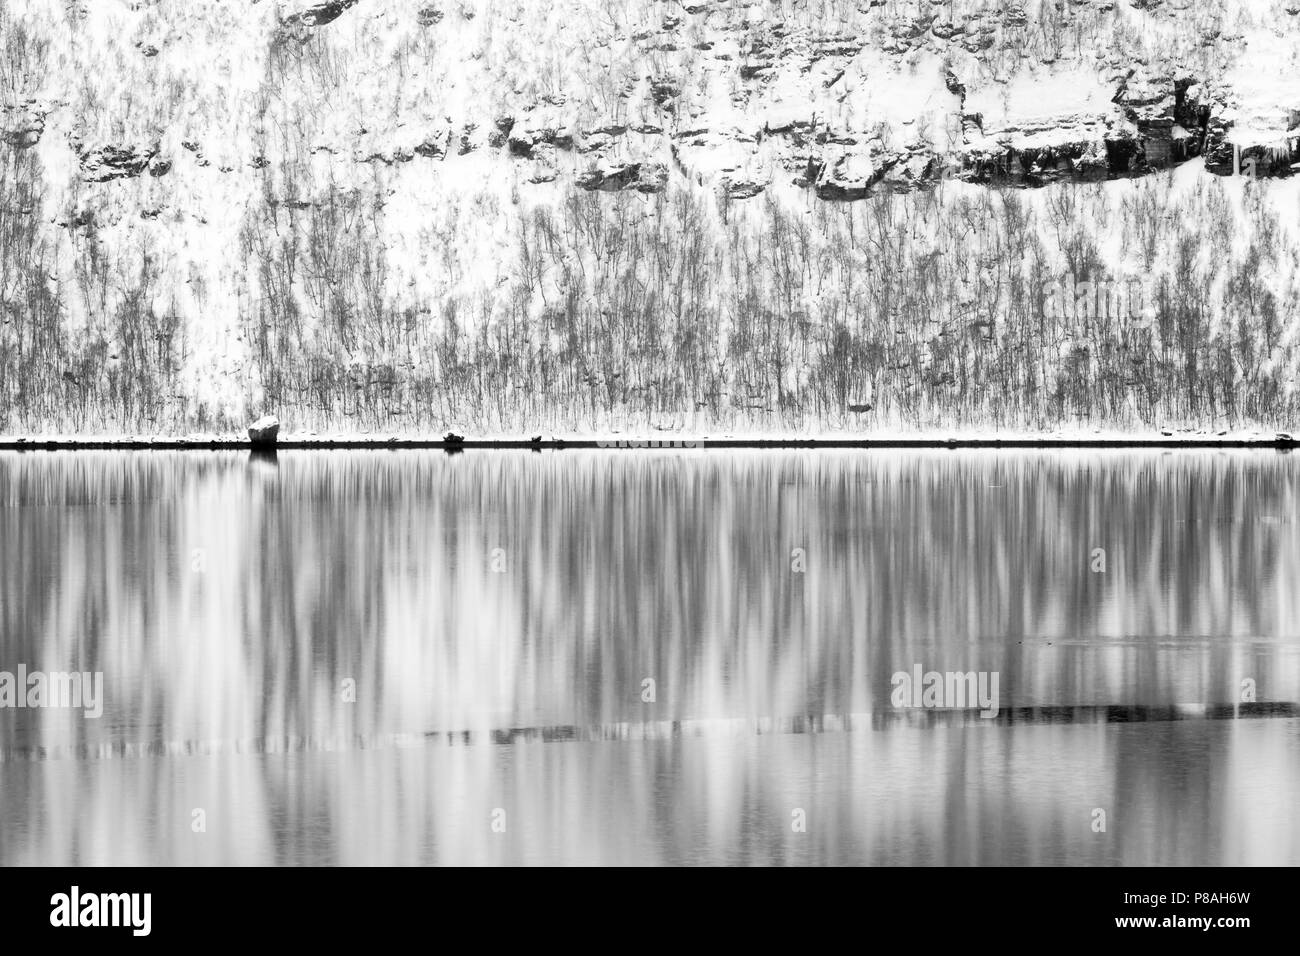 Abstract of snowcovered mountain in Arctic bay during winter, with reflection in water, Balsfjord, Norway - Stock Image